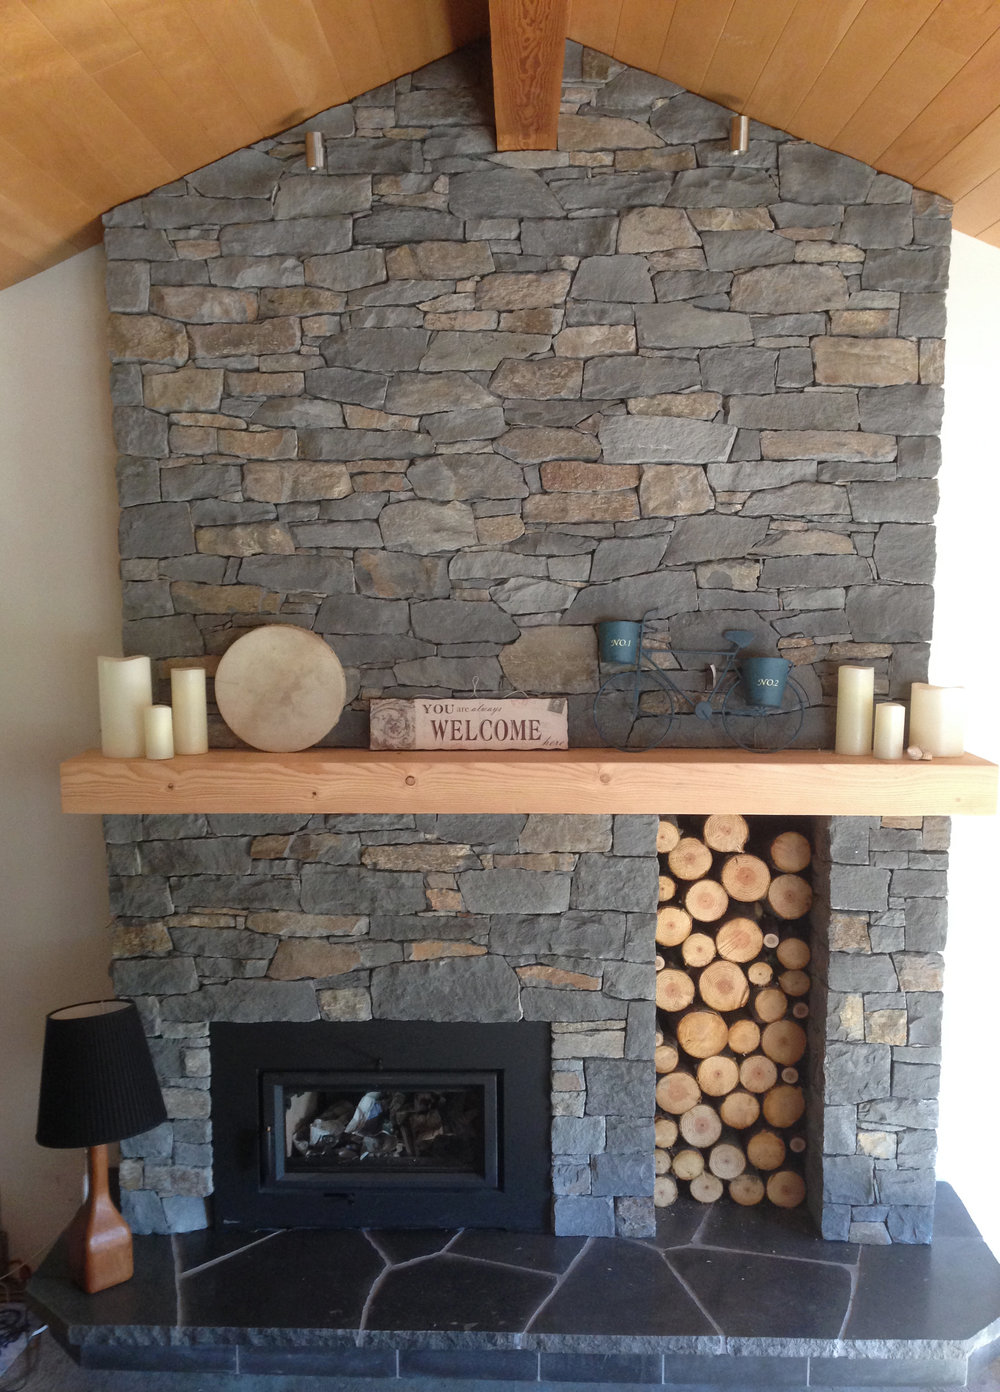 Basalt fireplace surround with Douglas fir mantel and polished basalt slab hearth